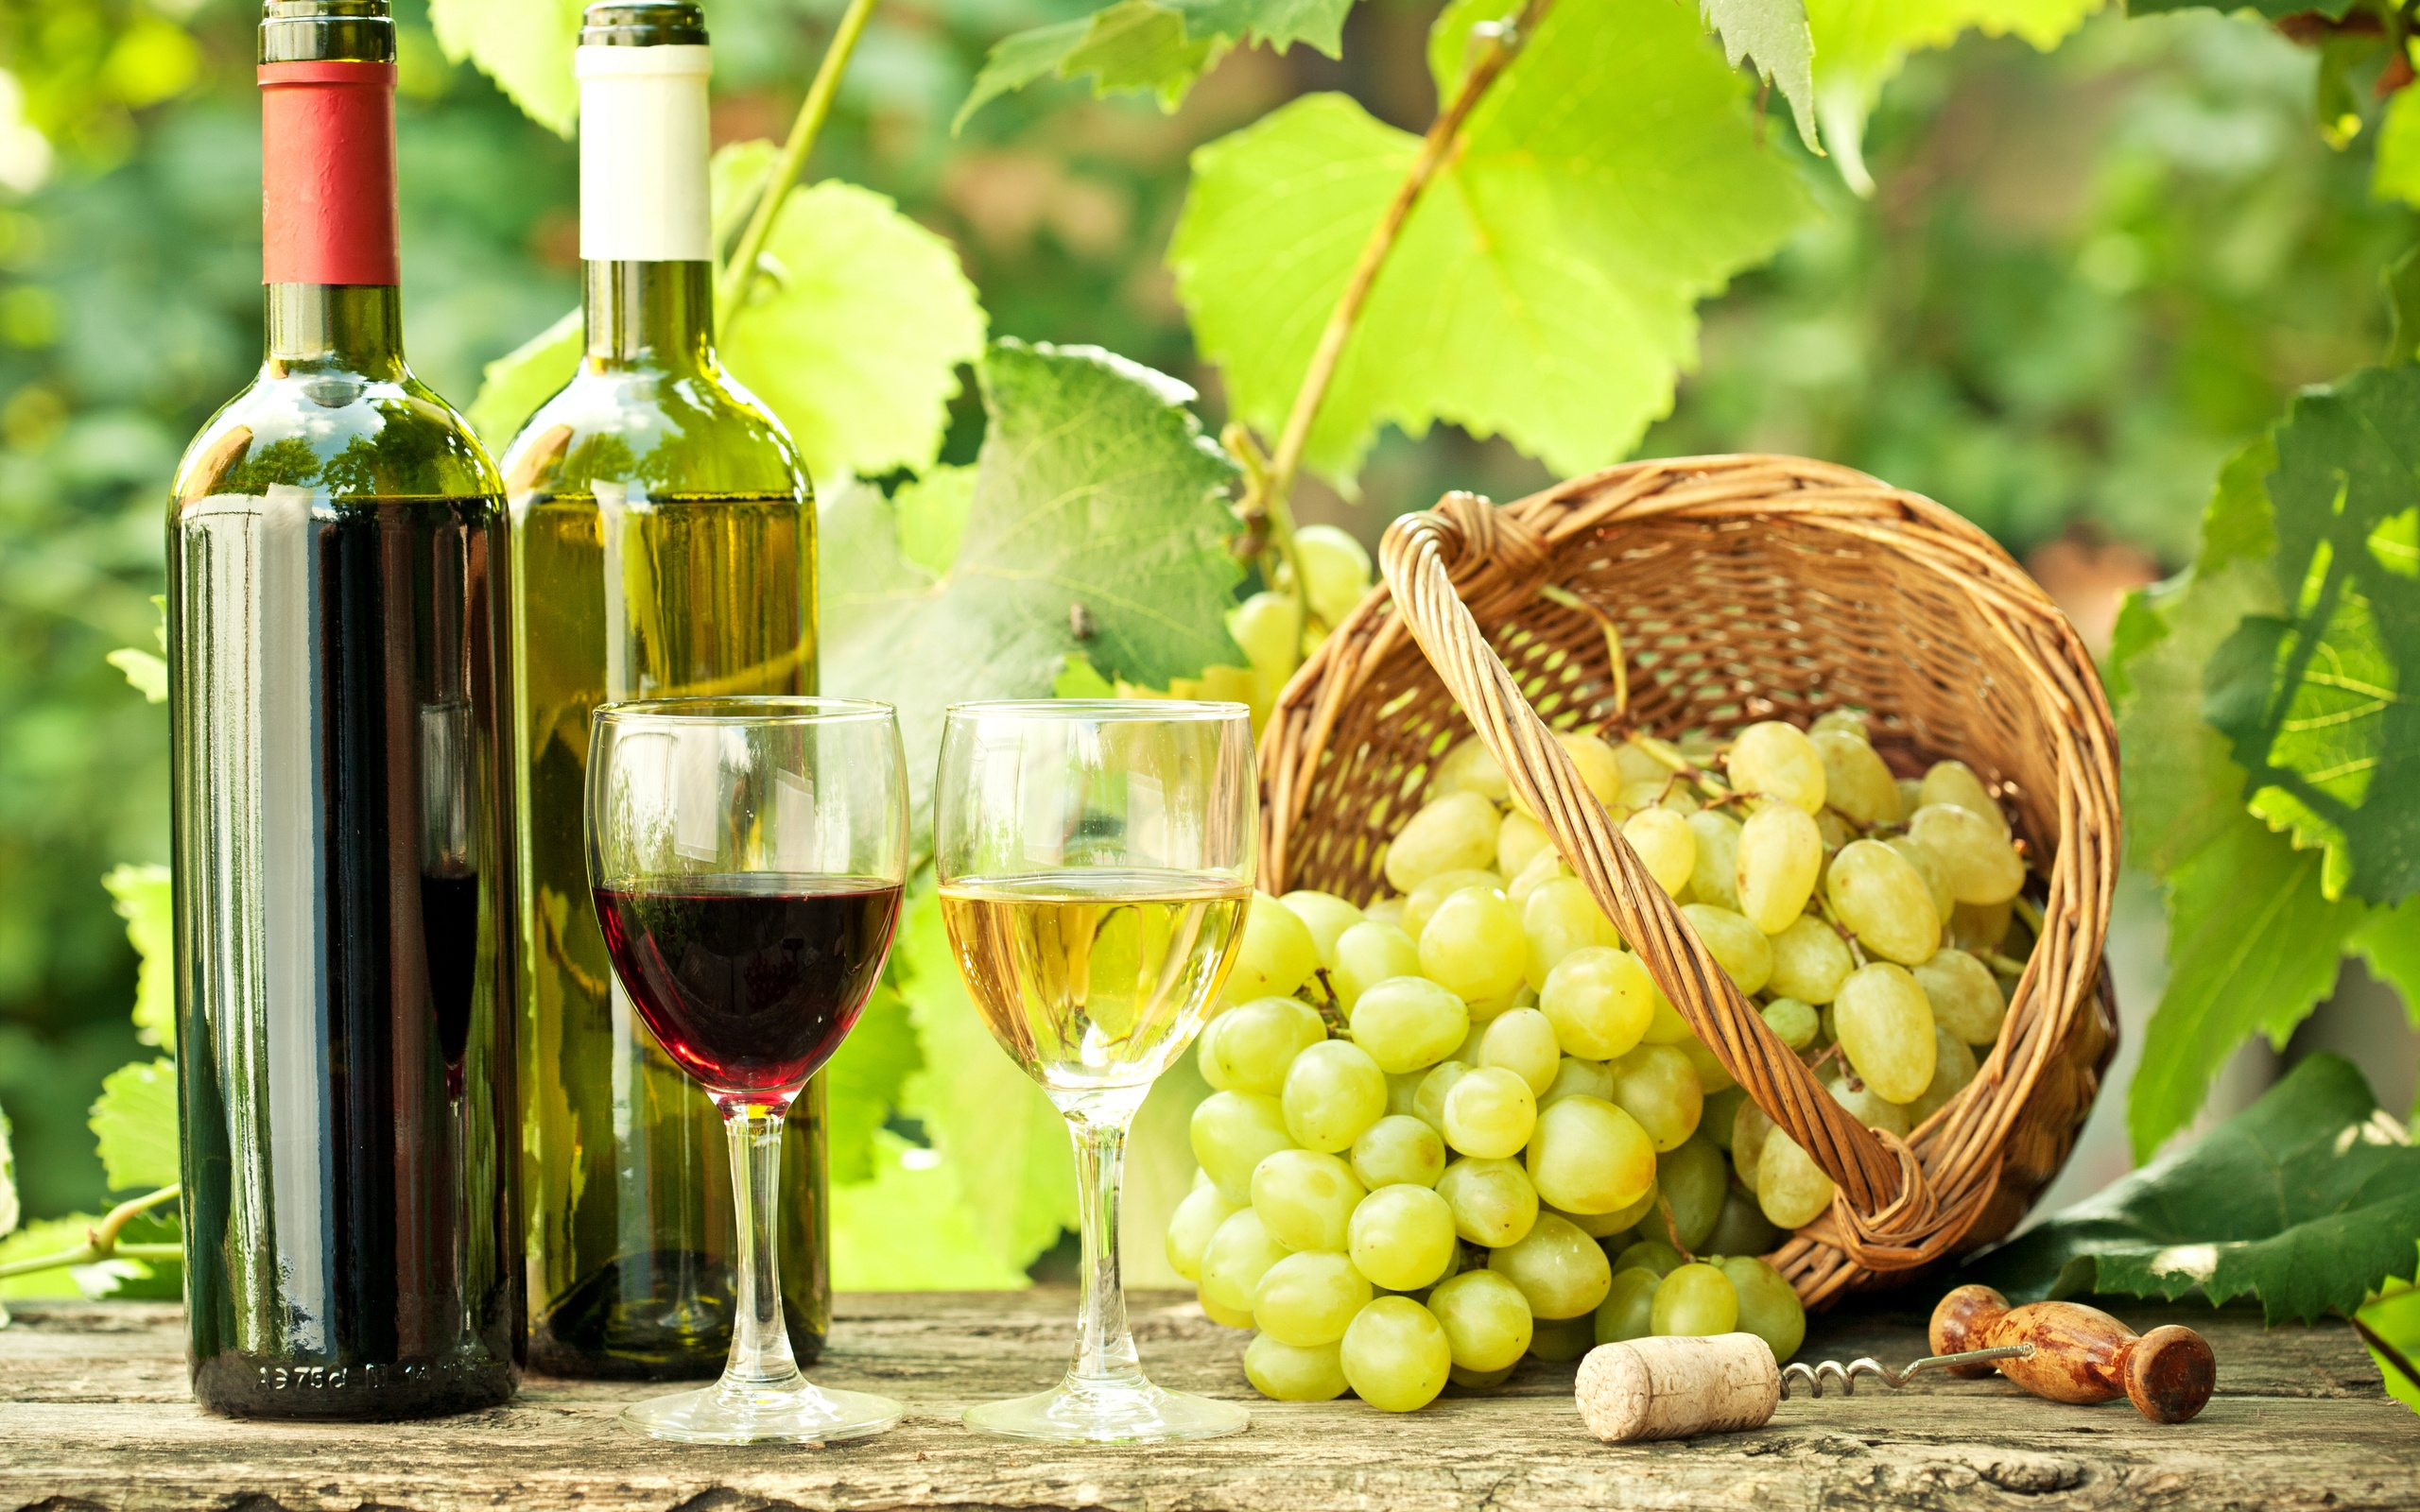 grapes wine hd wallpapers - photo #29